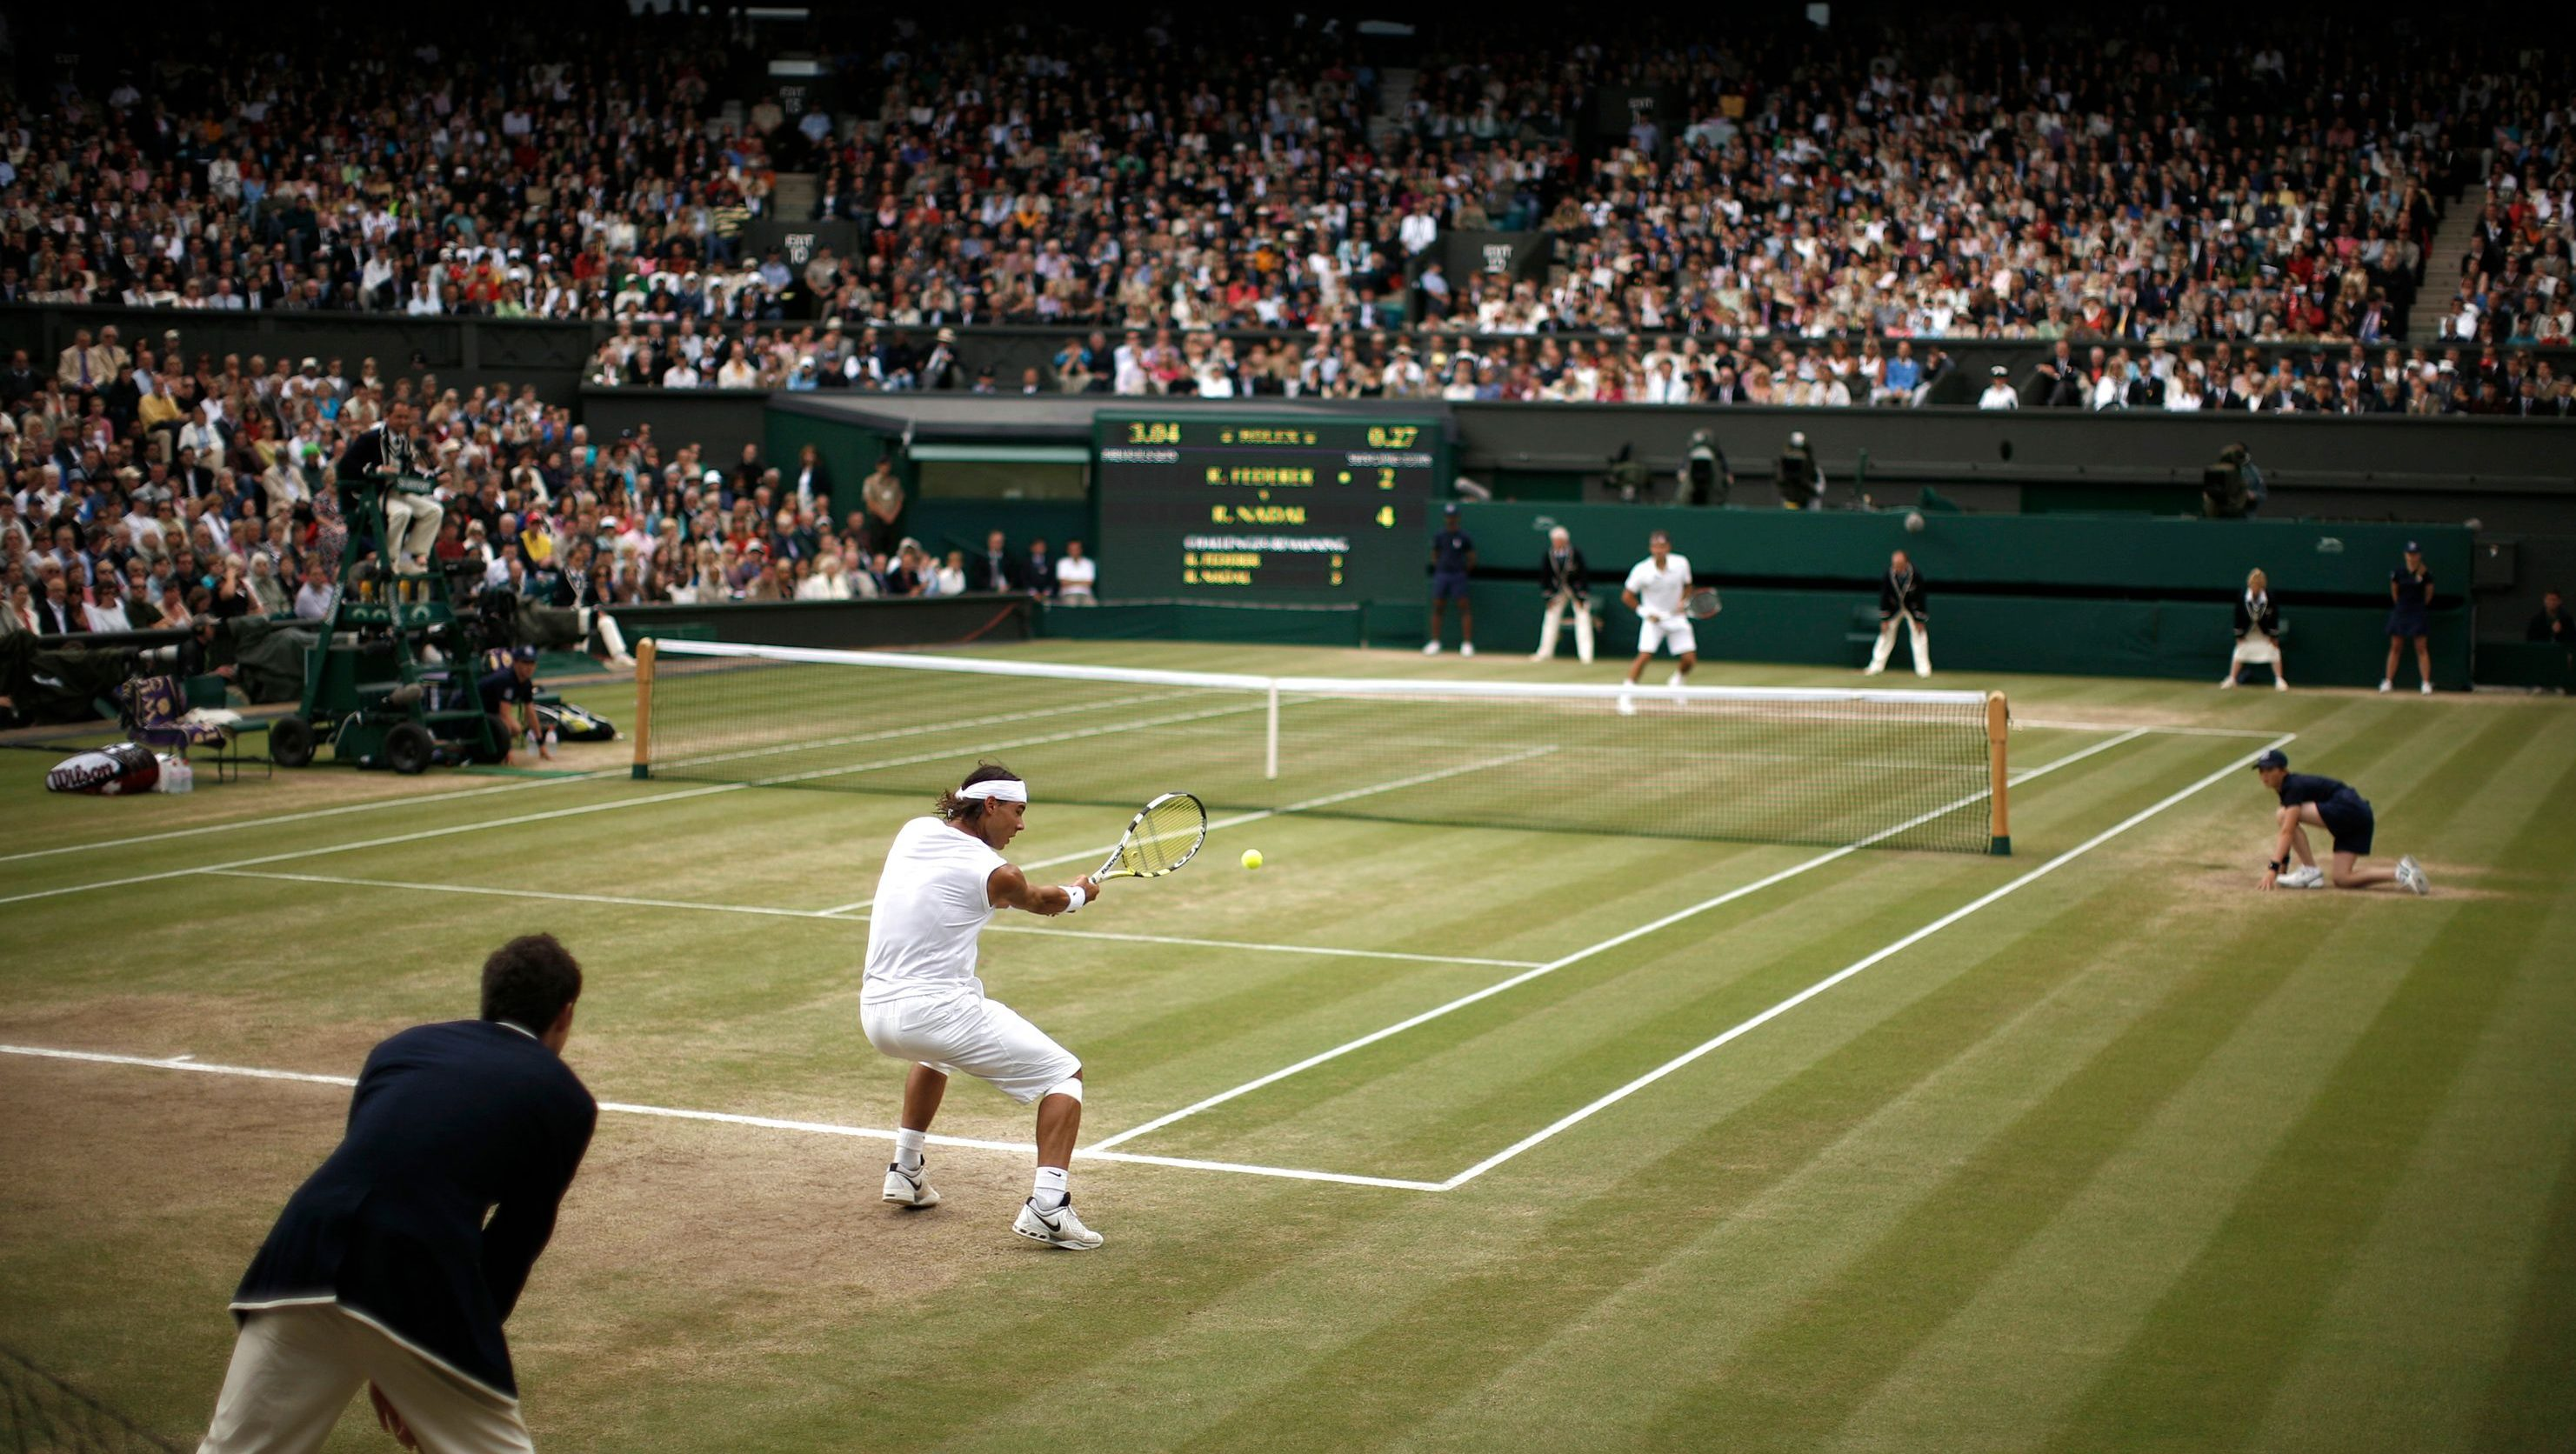 Rafael Nadal of Spain returns the ball to Roger Federer of Switzerland during their finals match at the Wimbledon tennis championships in London July 6, 2008.